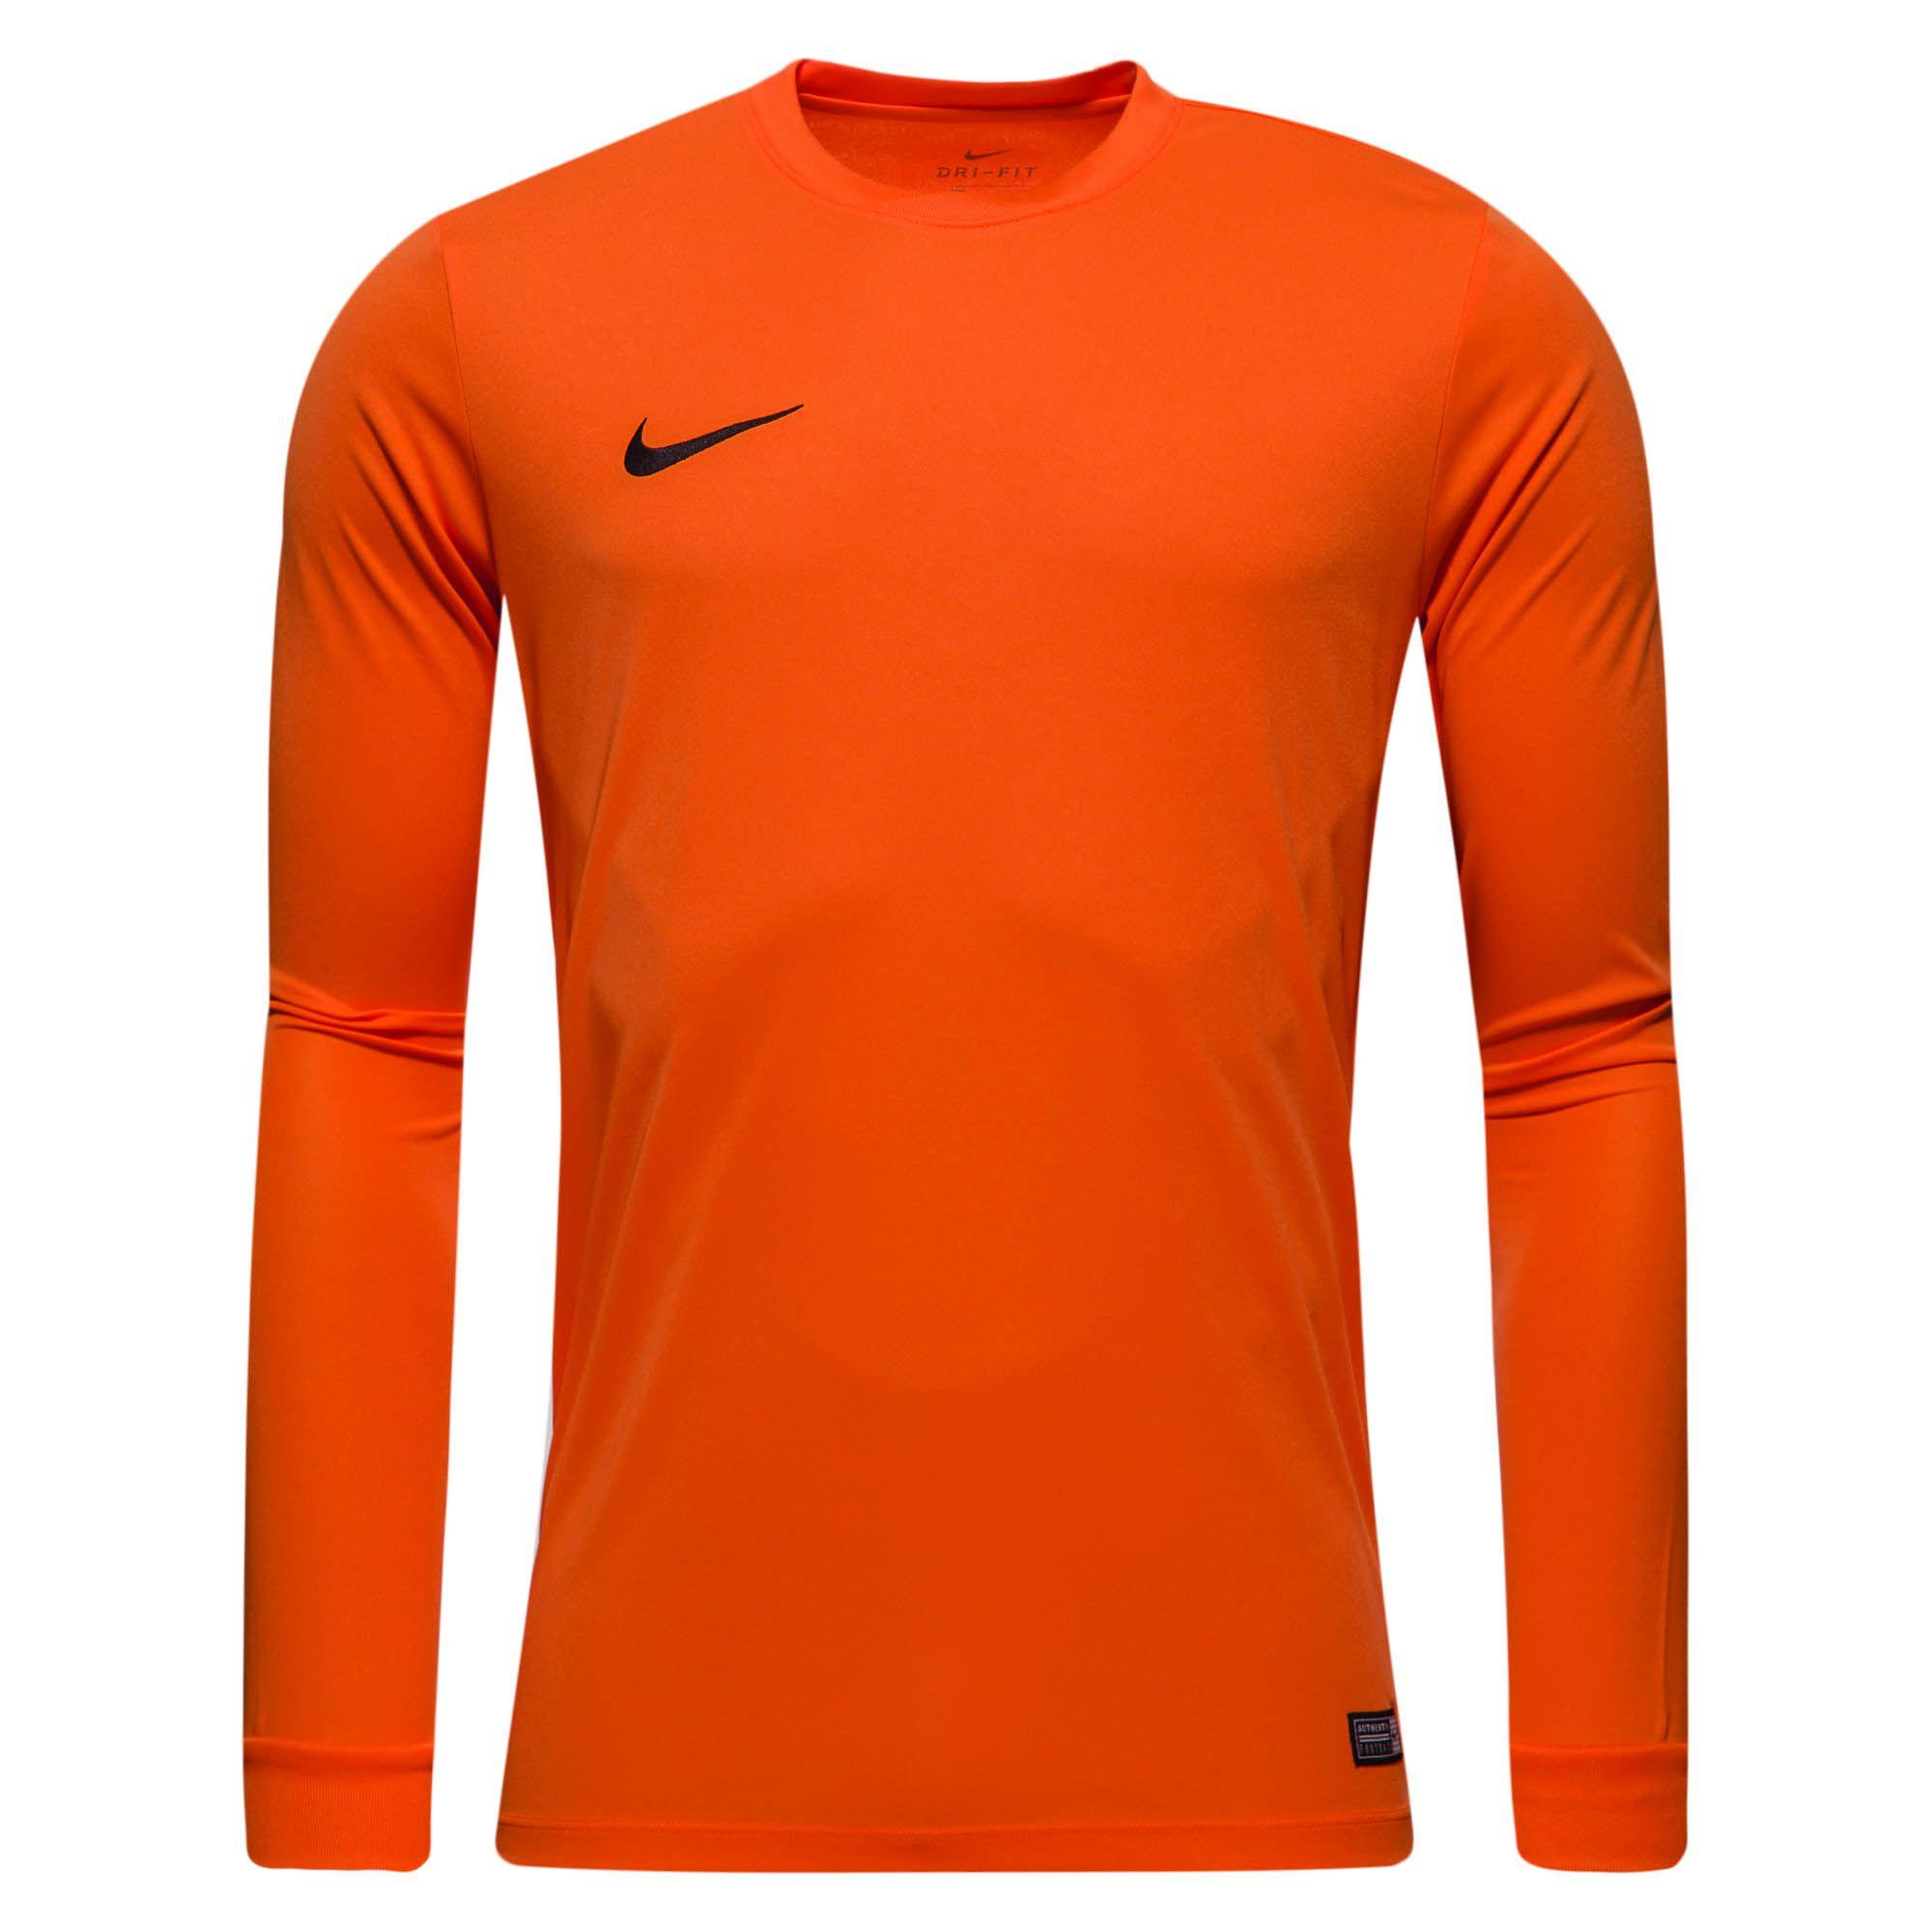 nike air max 90 en soldes - Nike Maillot de Football Park VI M/L Orange - Junior | www ...